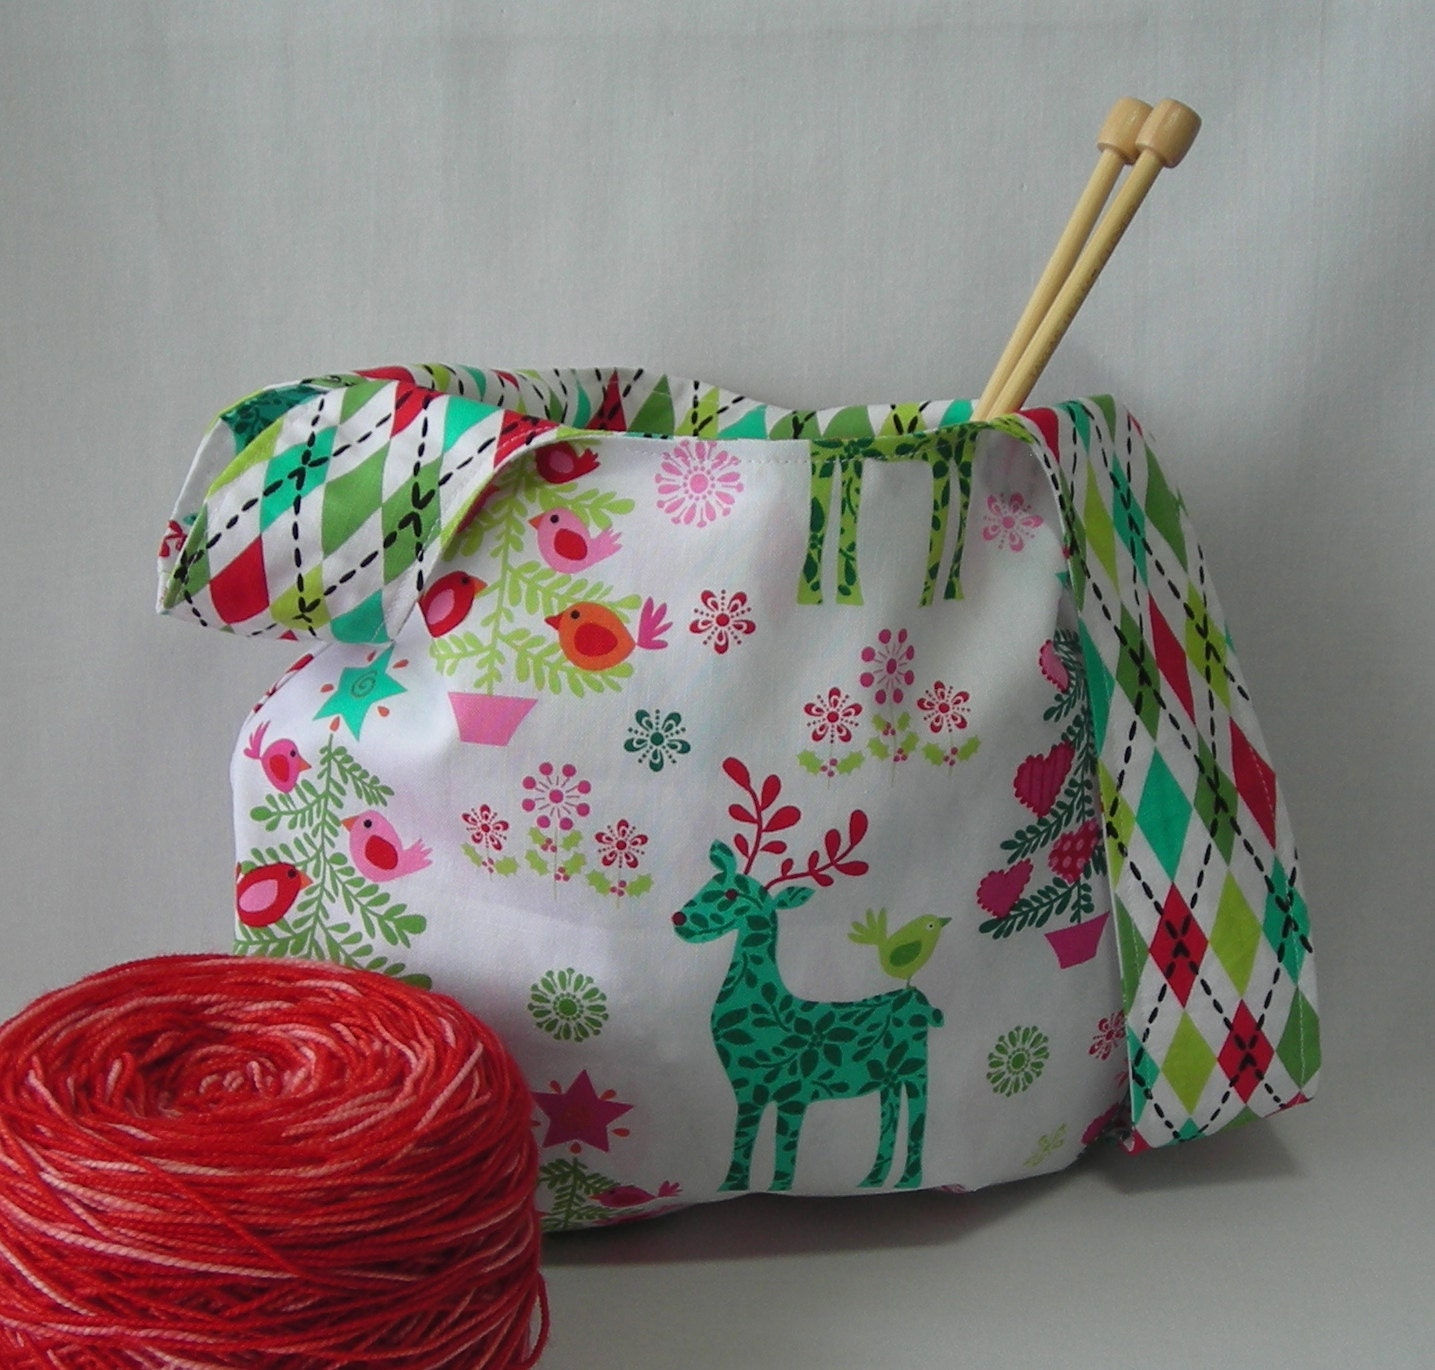 Crochet Japanese Knot Bag Pattern : knit crochet project bag Japanese knot bag reindeer tree